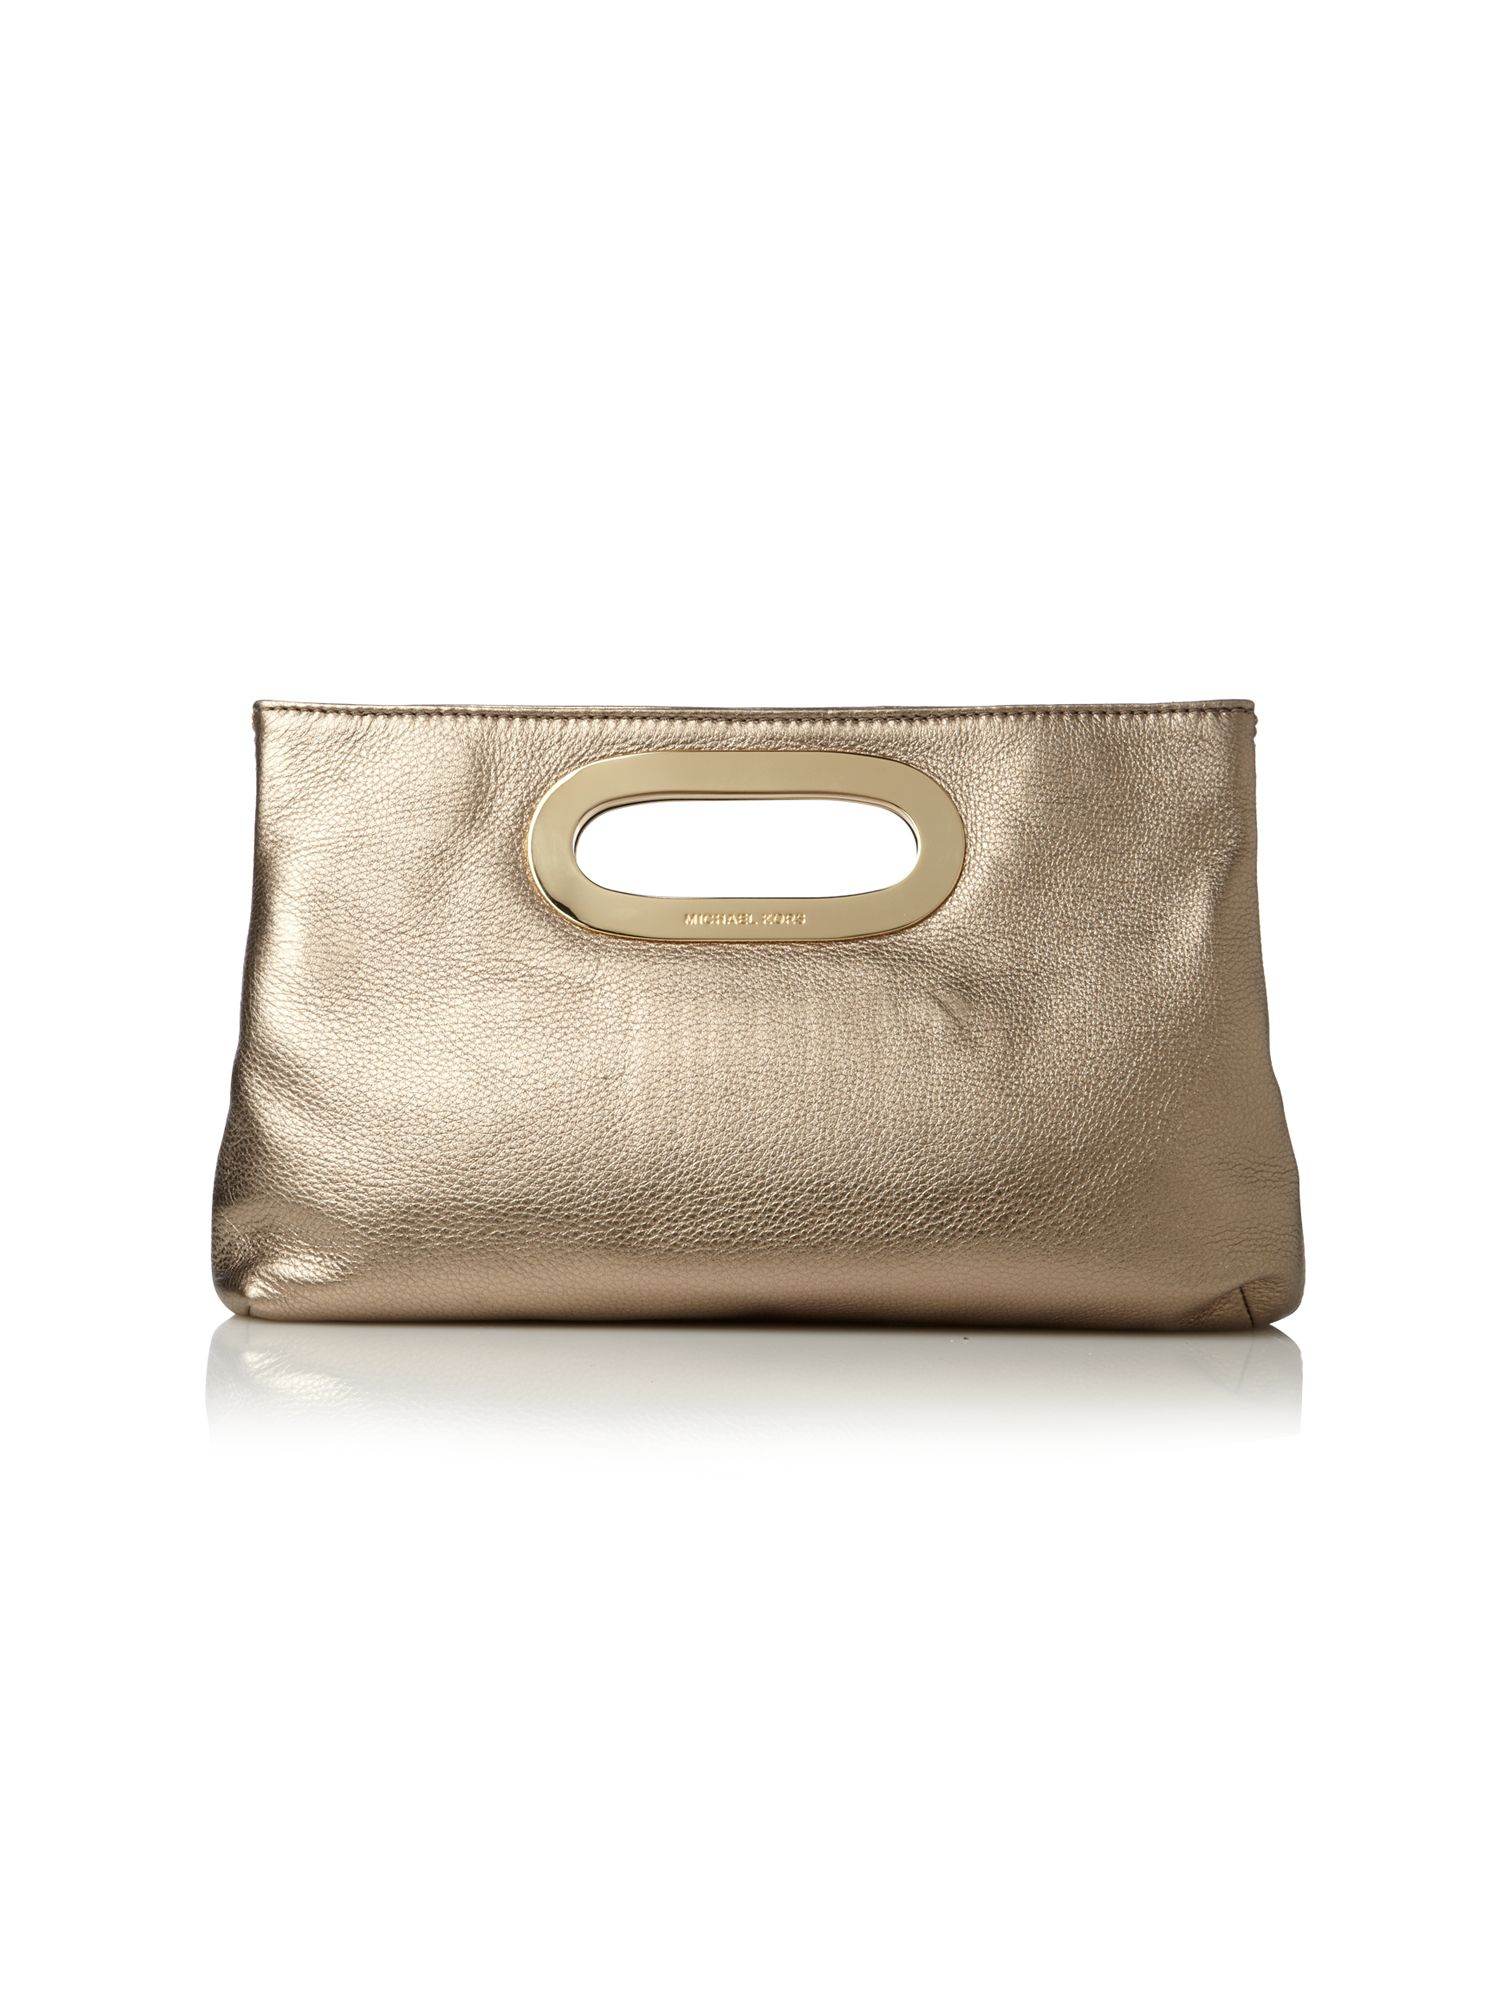 michael michael kors berkley clutch in gold metallic lyst. Black Bedroom Furniture Sets. Home Design Ideas